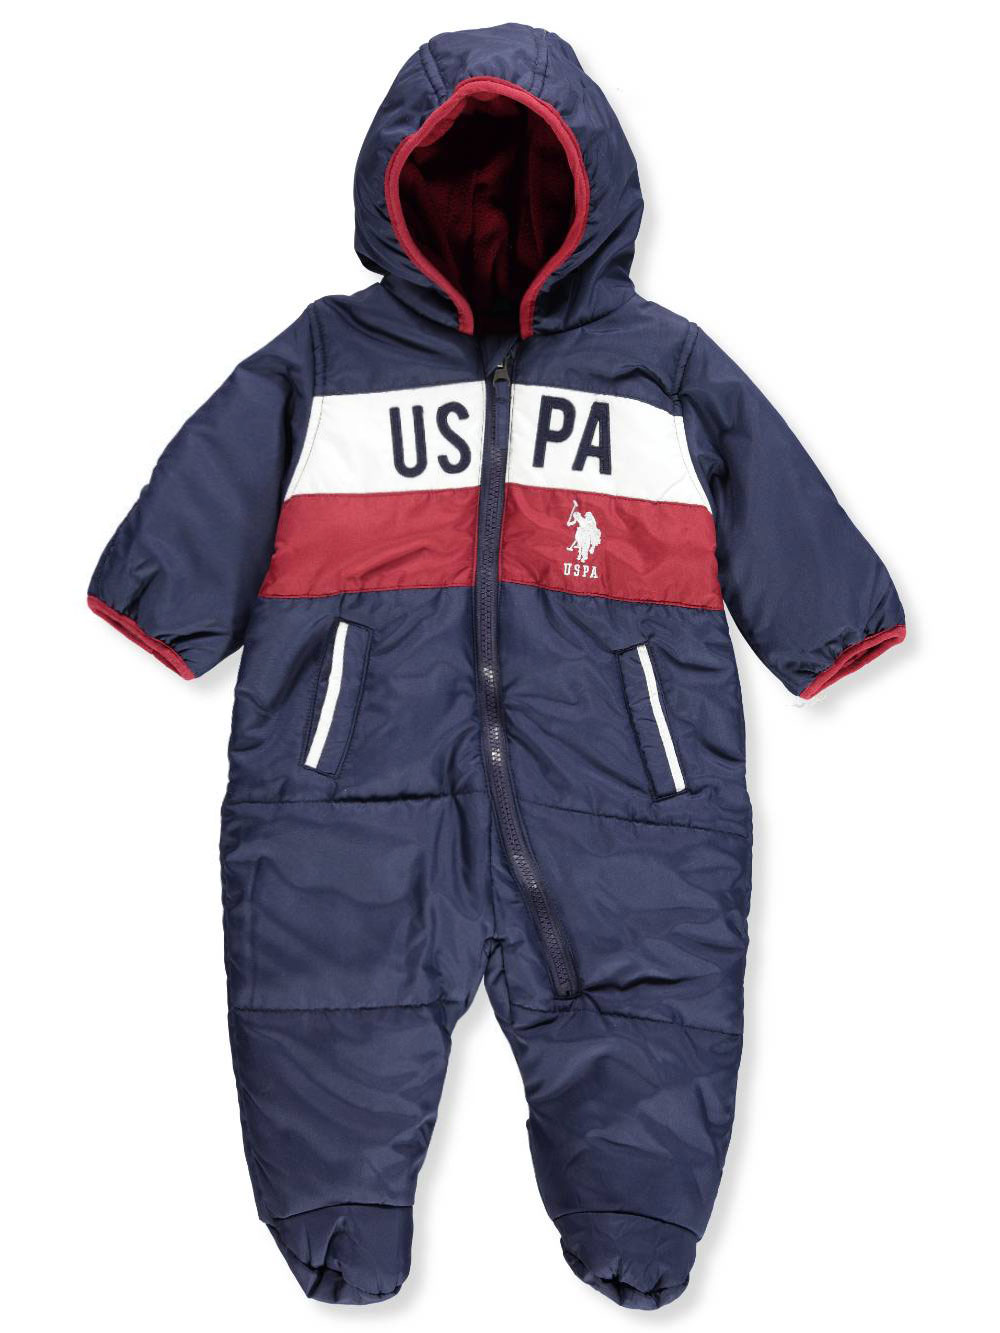 80f488634 Baby Boys' 1-Piece Snowsuit by U.S. Polo Assn. in Navy from Cookie's Kids